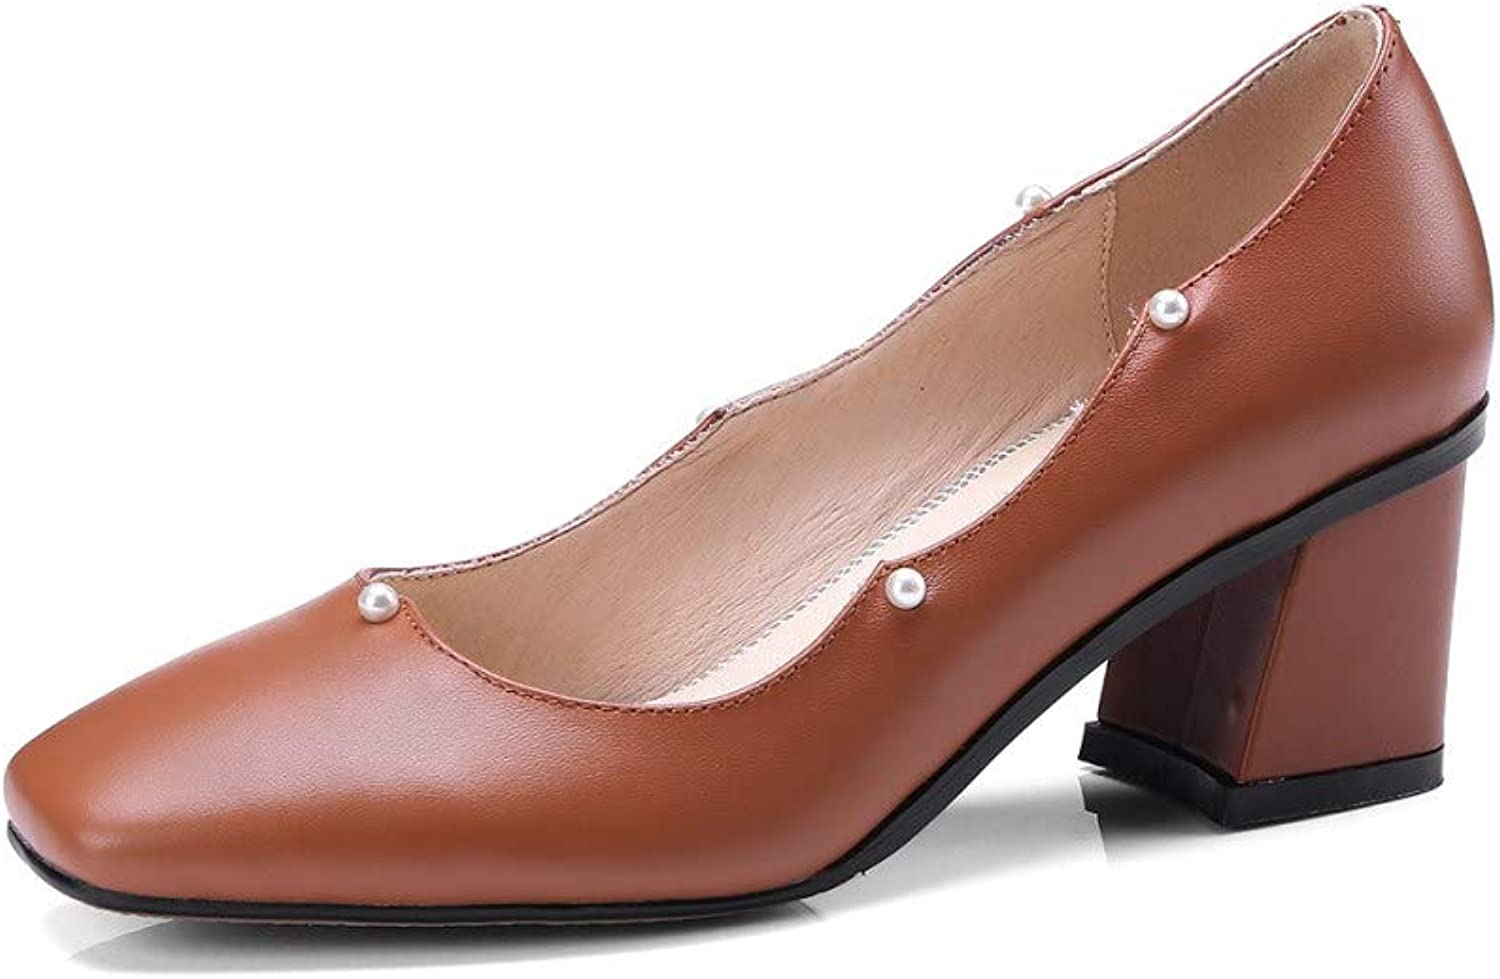 Nine Seven Genuine Leather Women's Round Toe Chunky Heel Handmade Pumps shoes with Pearl Detail (4.5, Brown)